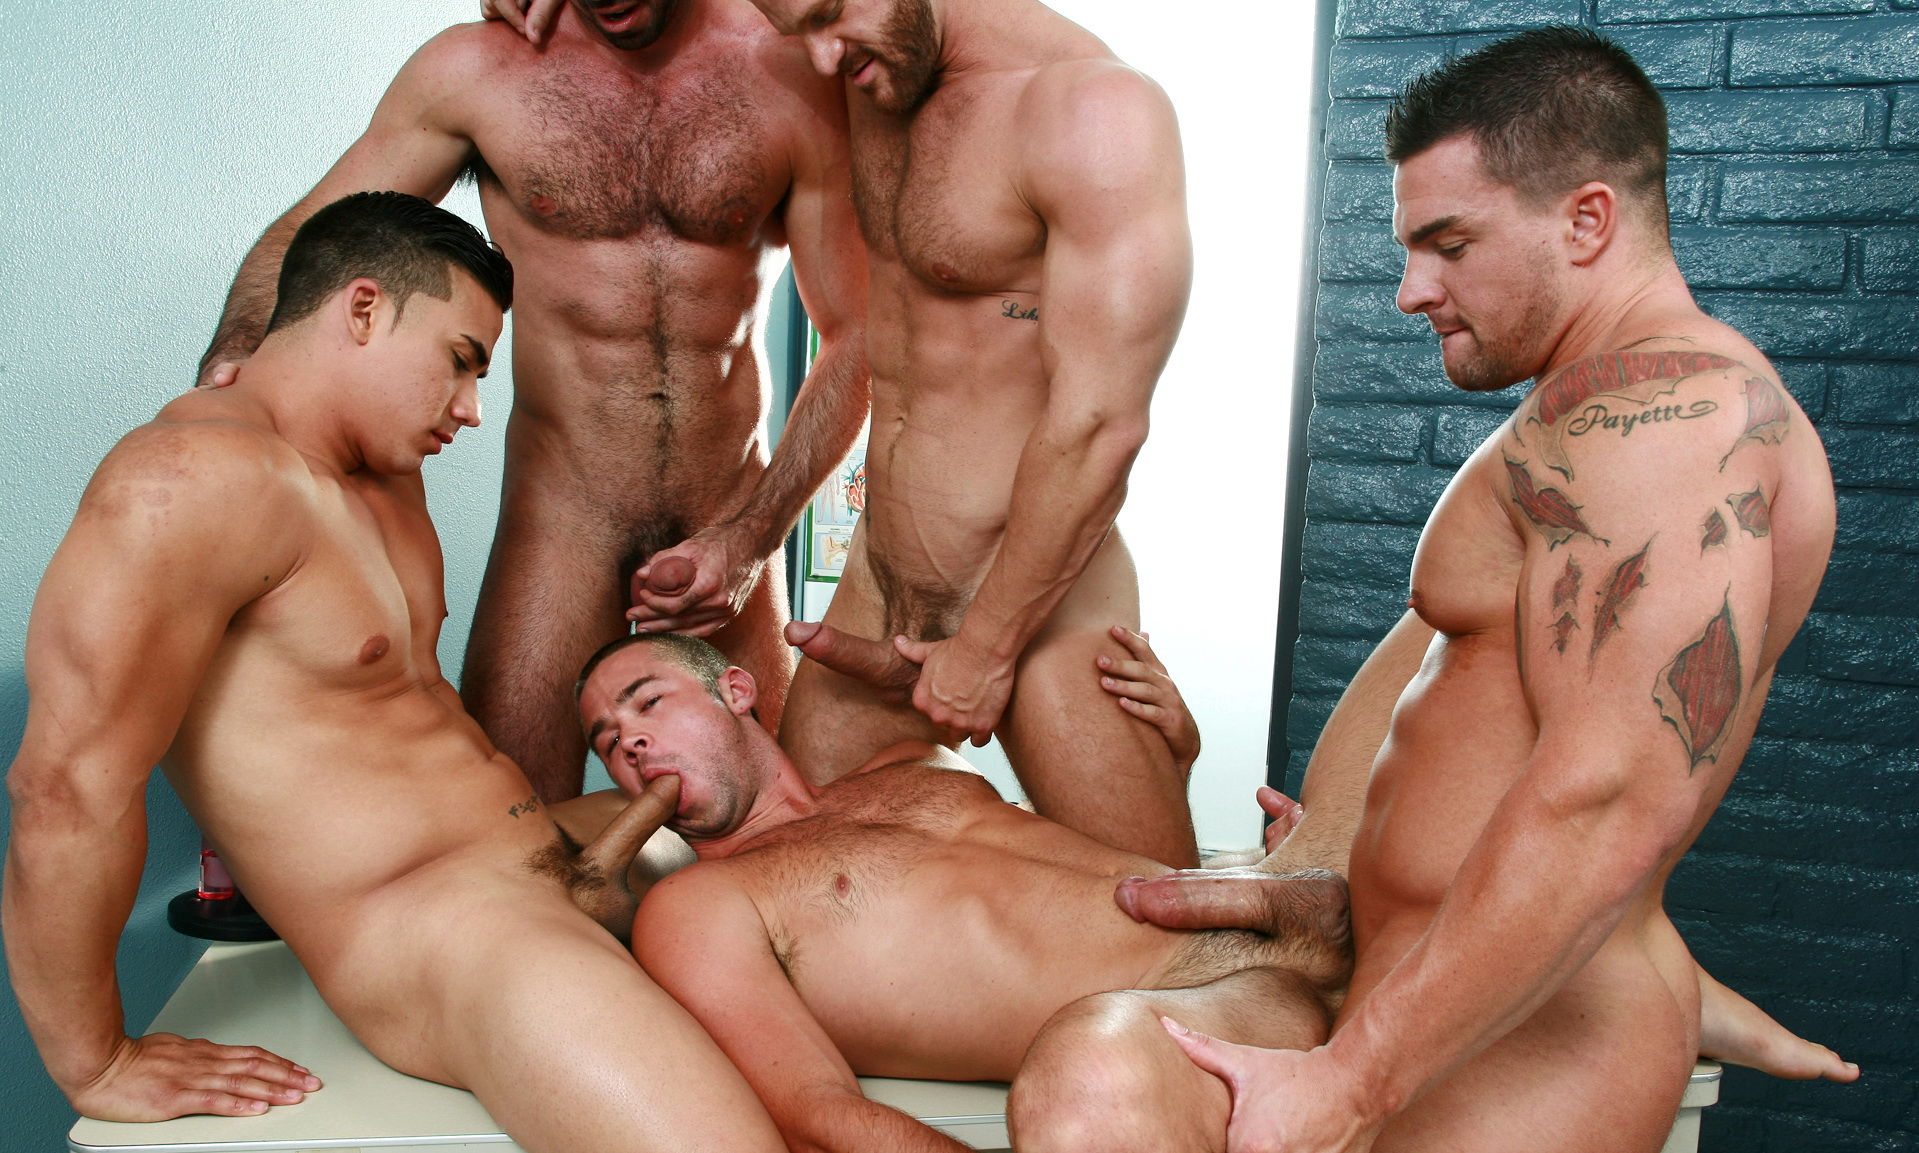 Hunky guys fucking — photo 5